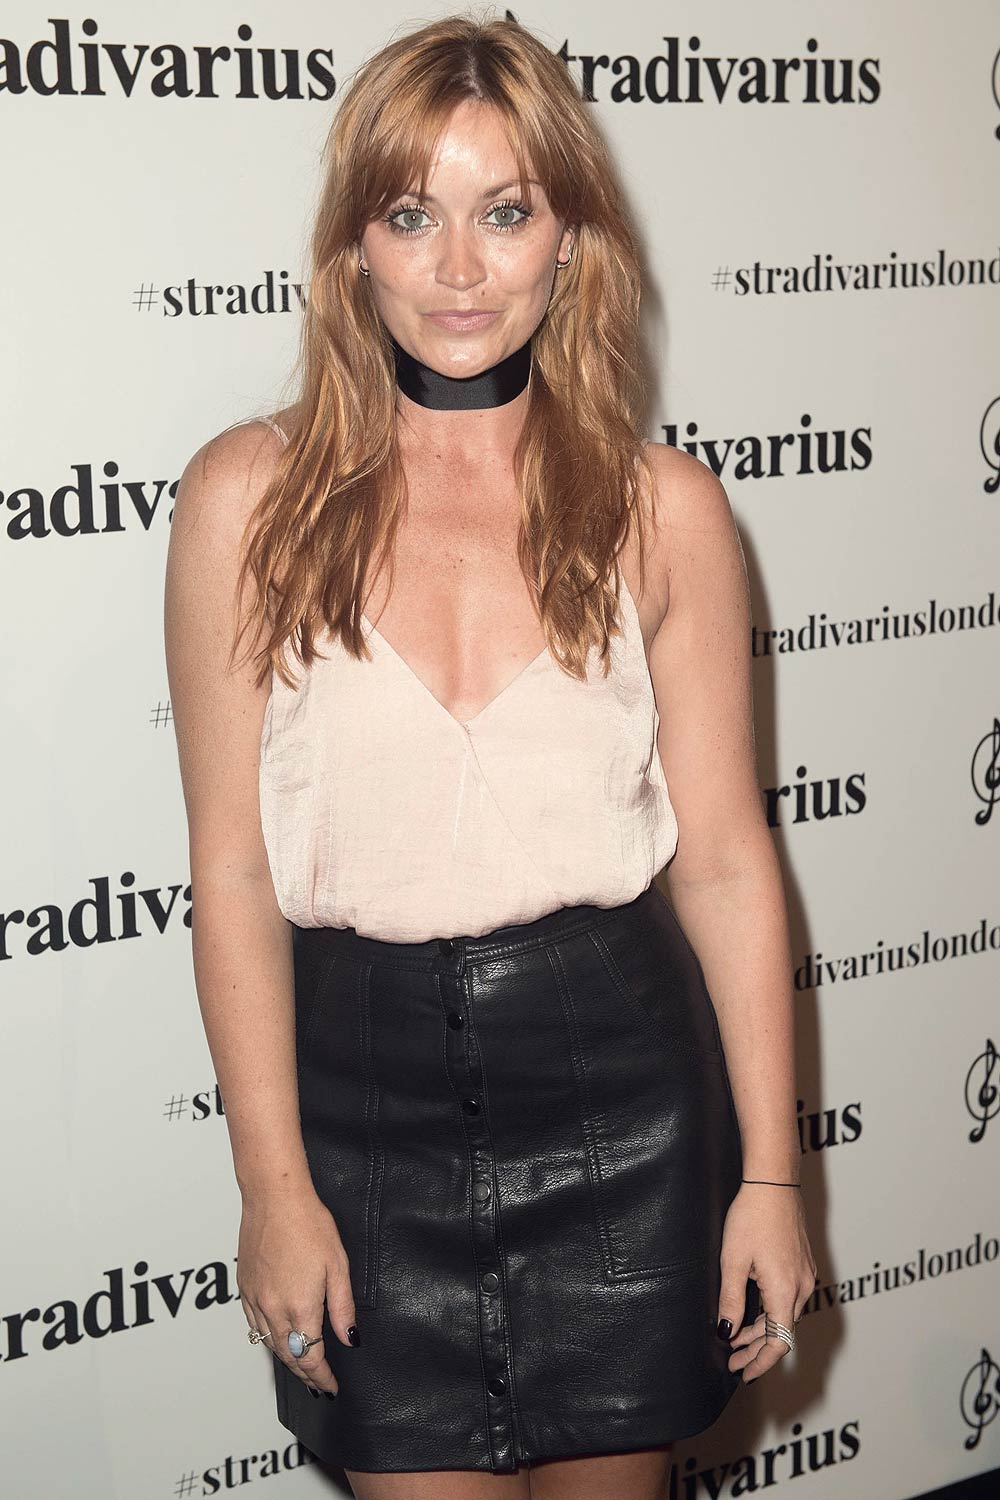 ... Arielle Free attends the Stradivarius Oxford Street store launch party